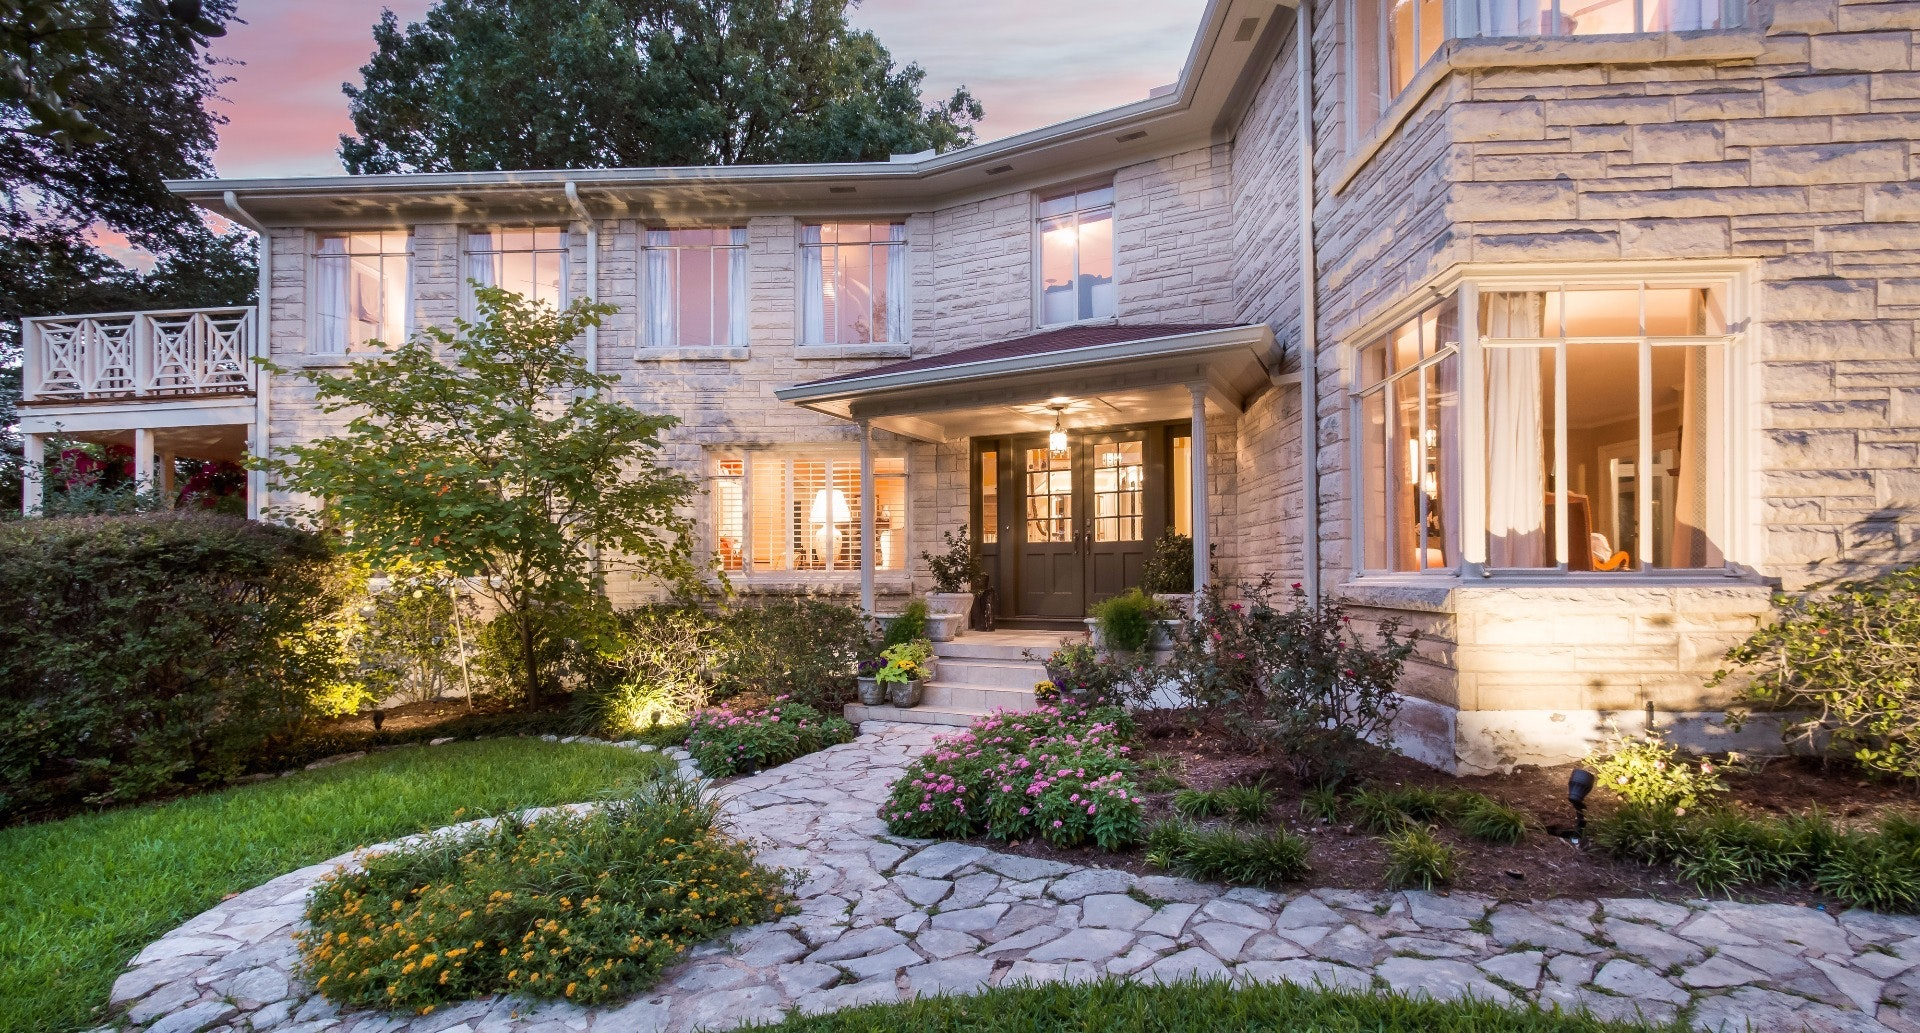 Large white stone two story house